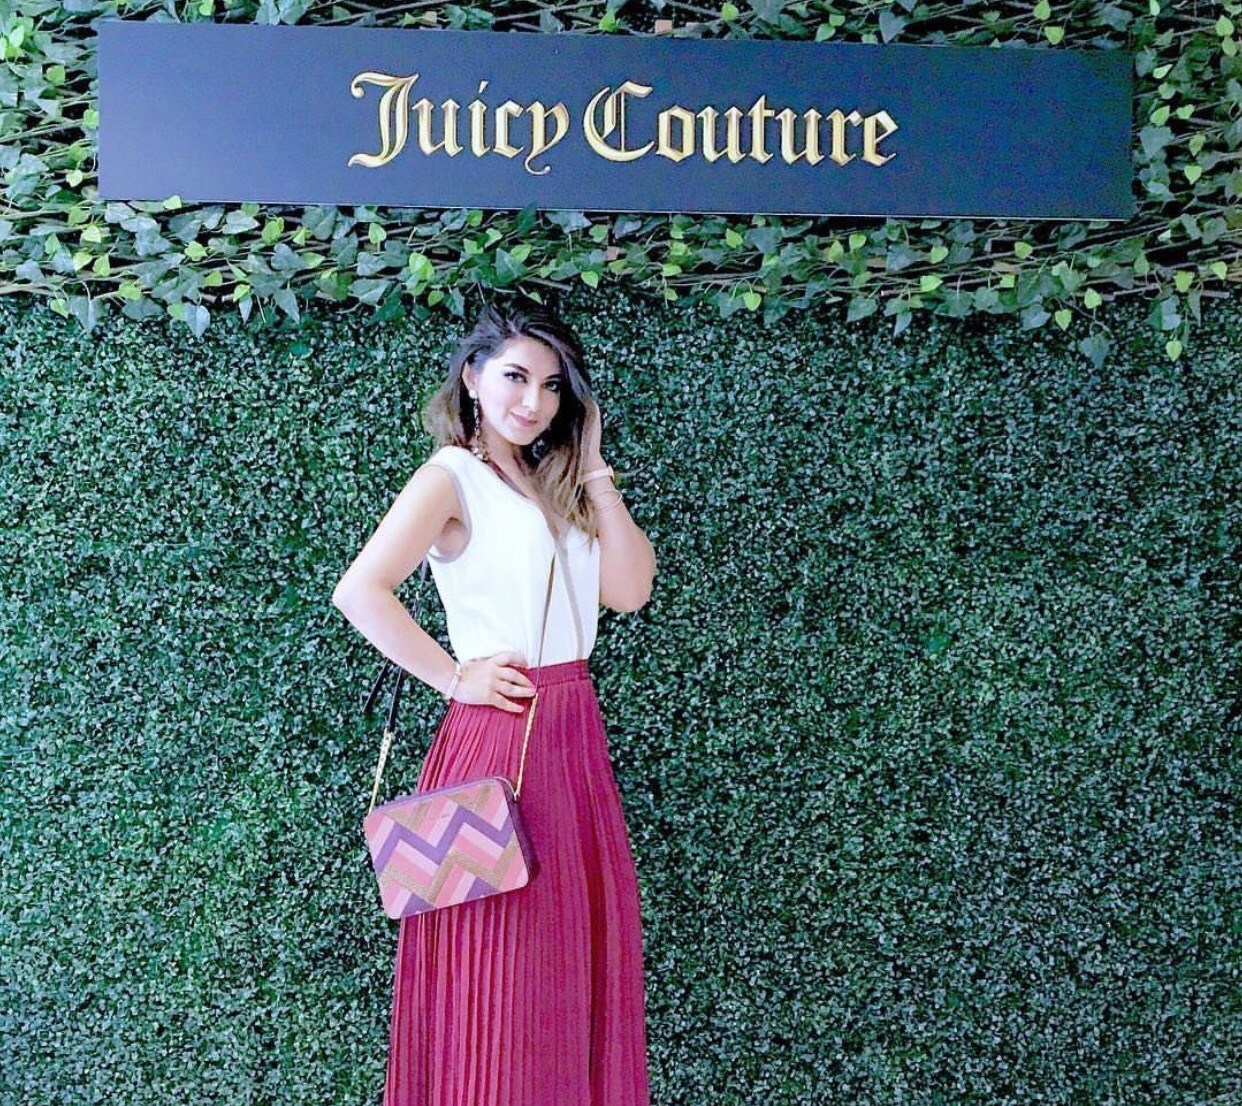 Juicy Couture Fragrance Launch in Dubai